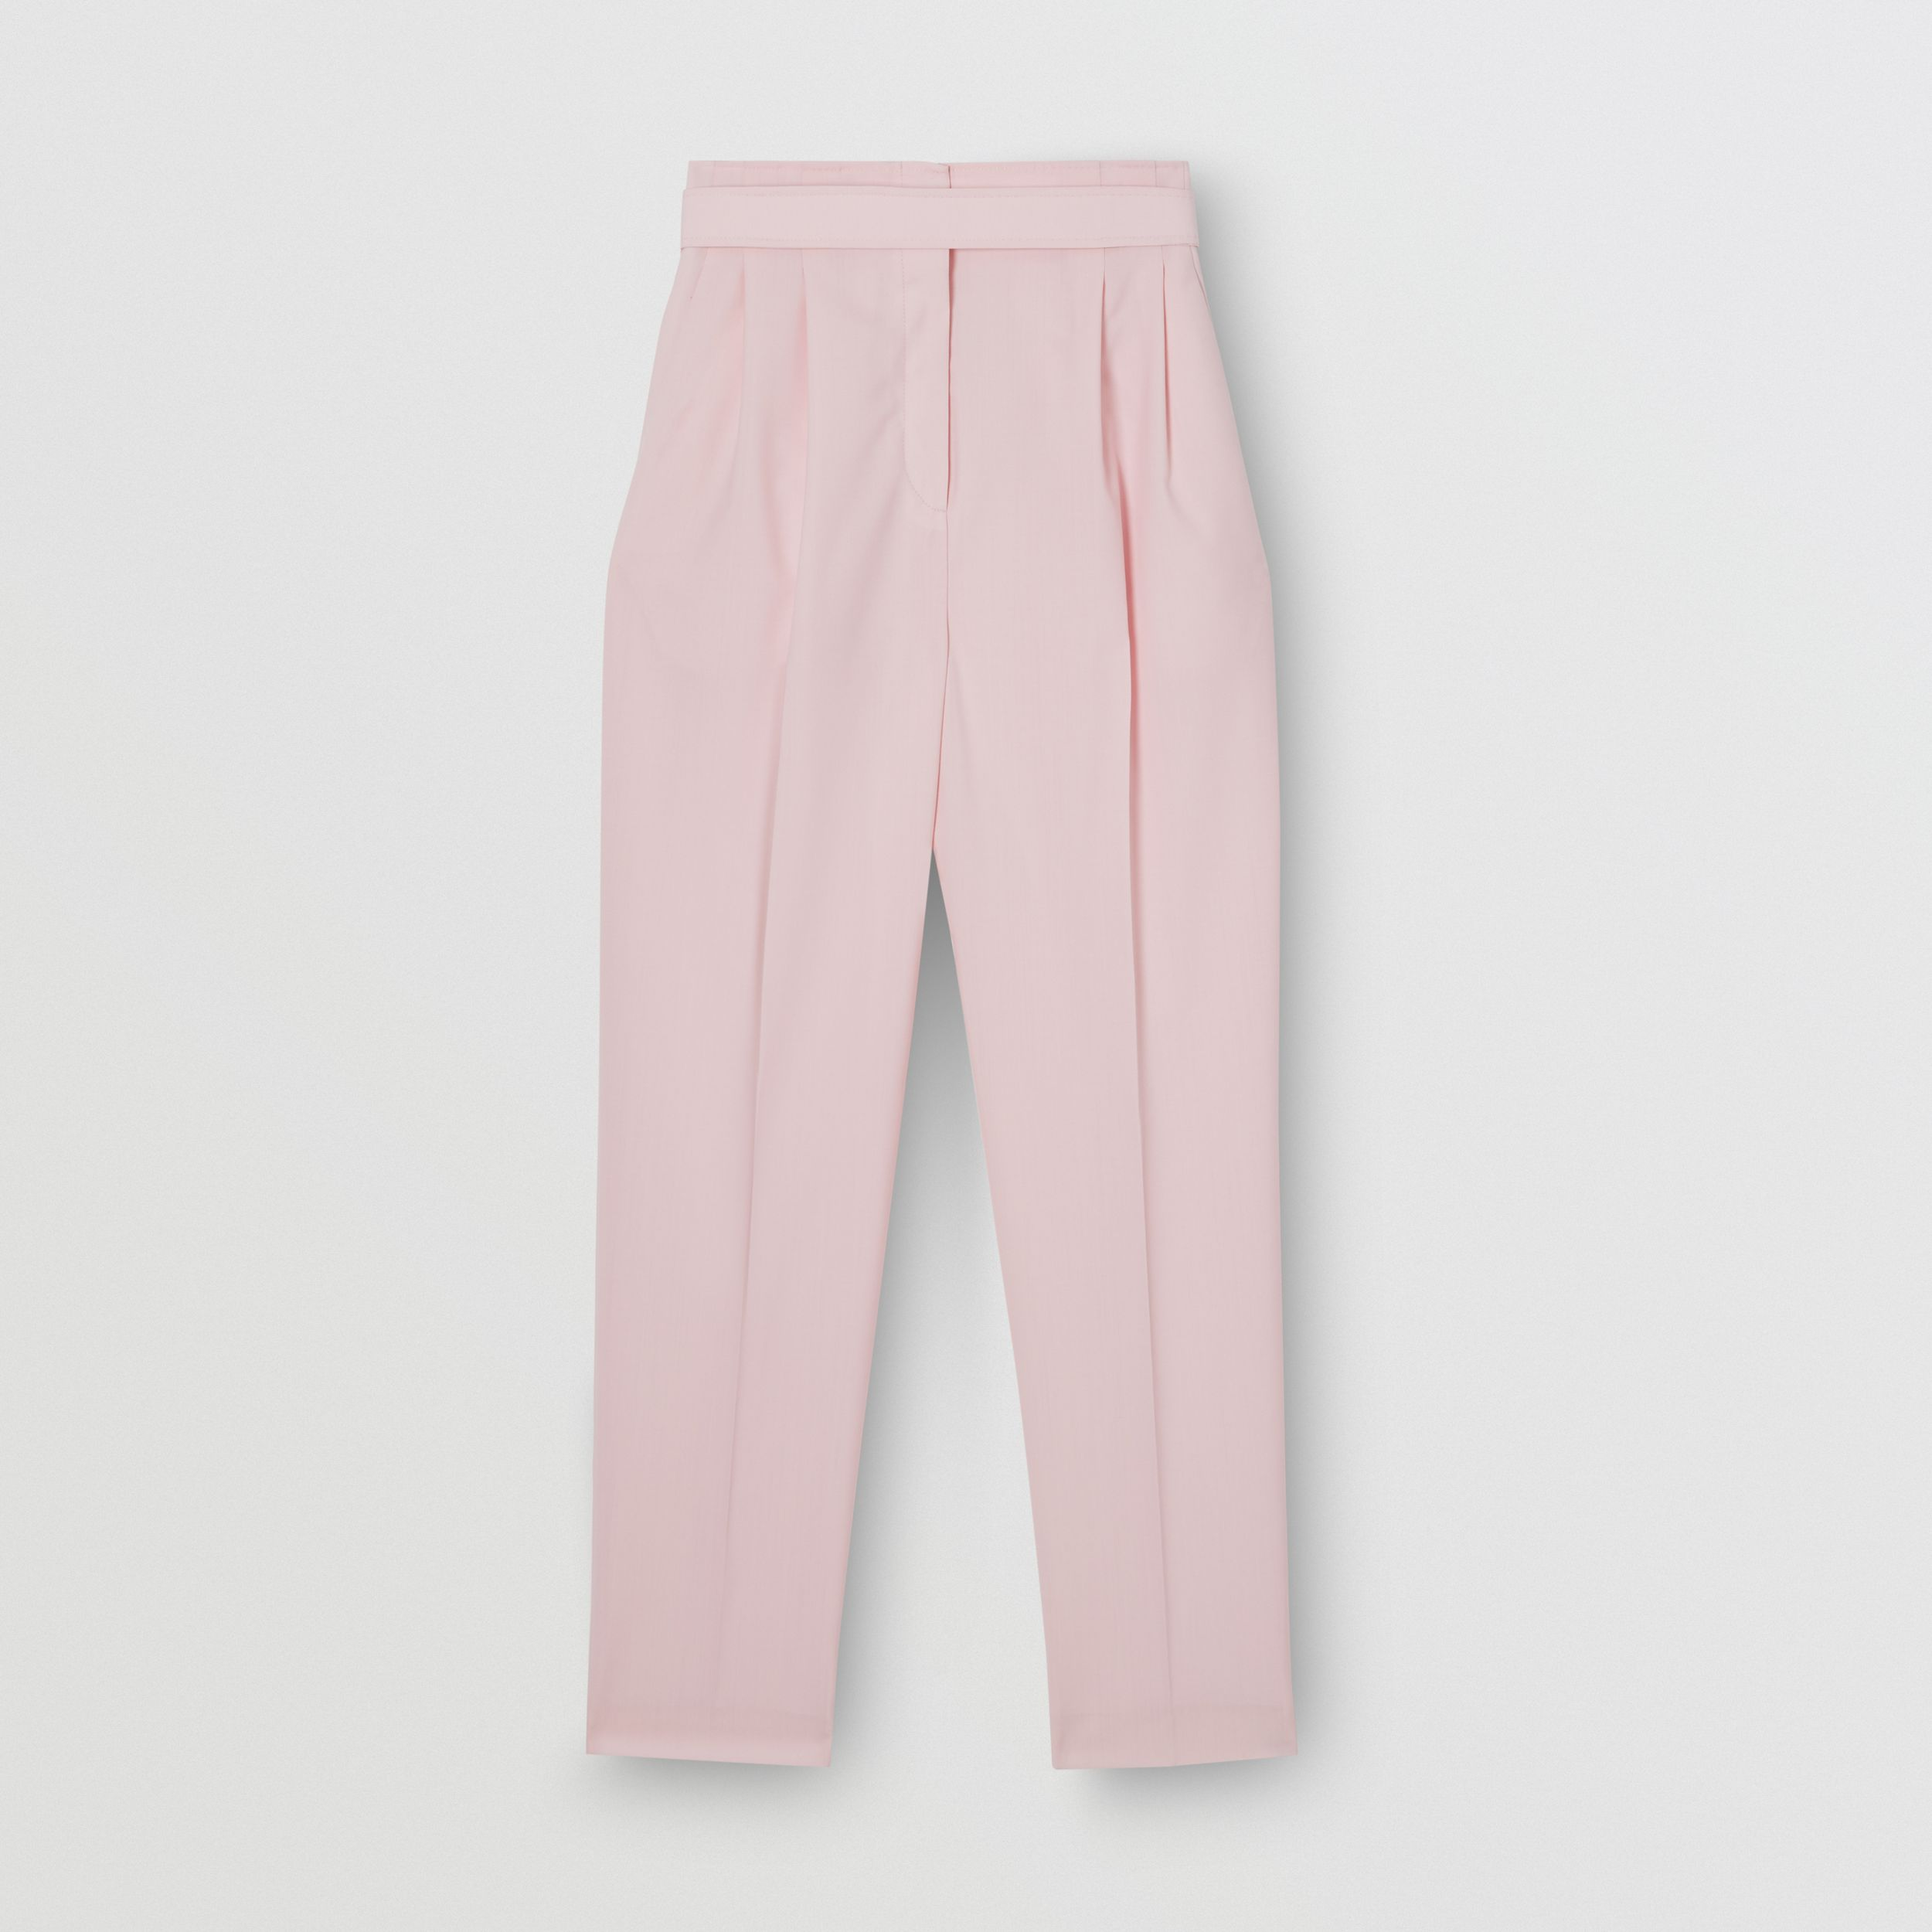 Cut-out Detail Wool Canvas Tailored Trousers in Pastel Pink - Women | Burberry Canada - 2